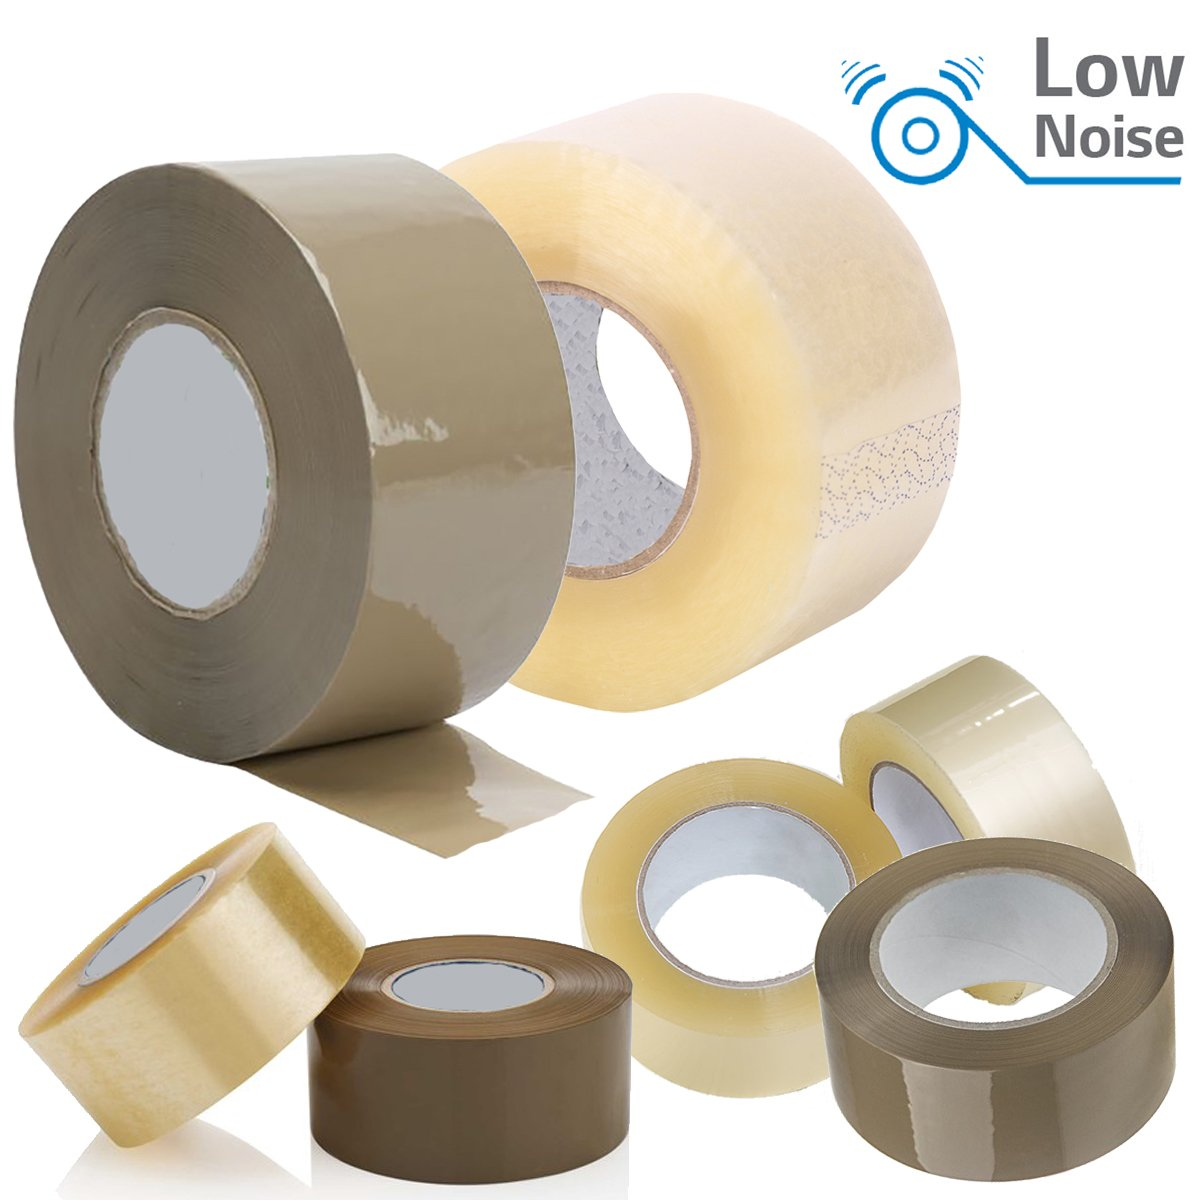 Comtechlogic® CM-5098 Low Noise 48MM x 150M Brown/Clear Packaging Tape for Parcels and Boxes. Heavy Duty Brown Box Packing Tape Provides a Strong, Secure and Sticky Seal for Your Boxes (6, Brown) Comtechlogic®